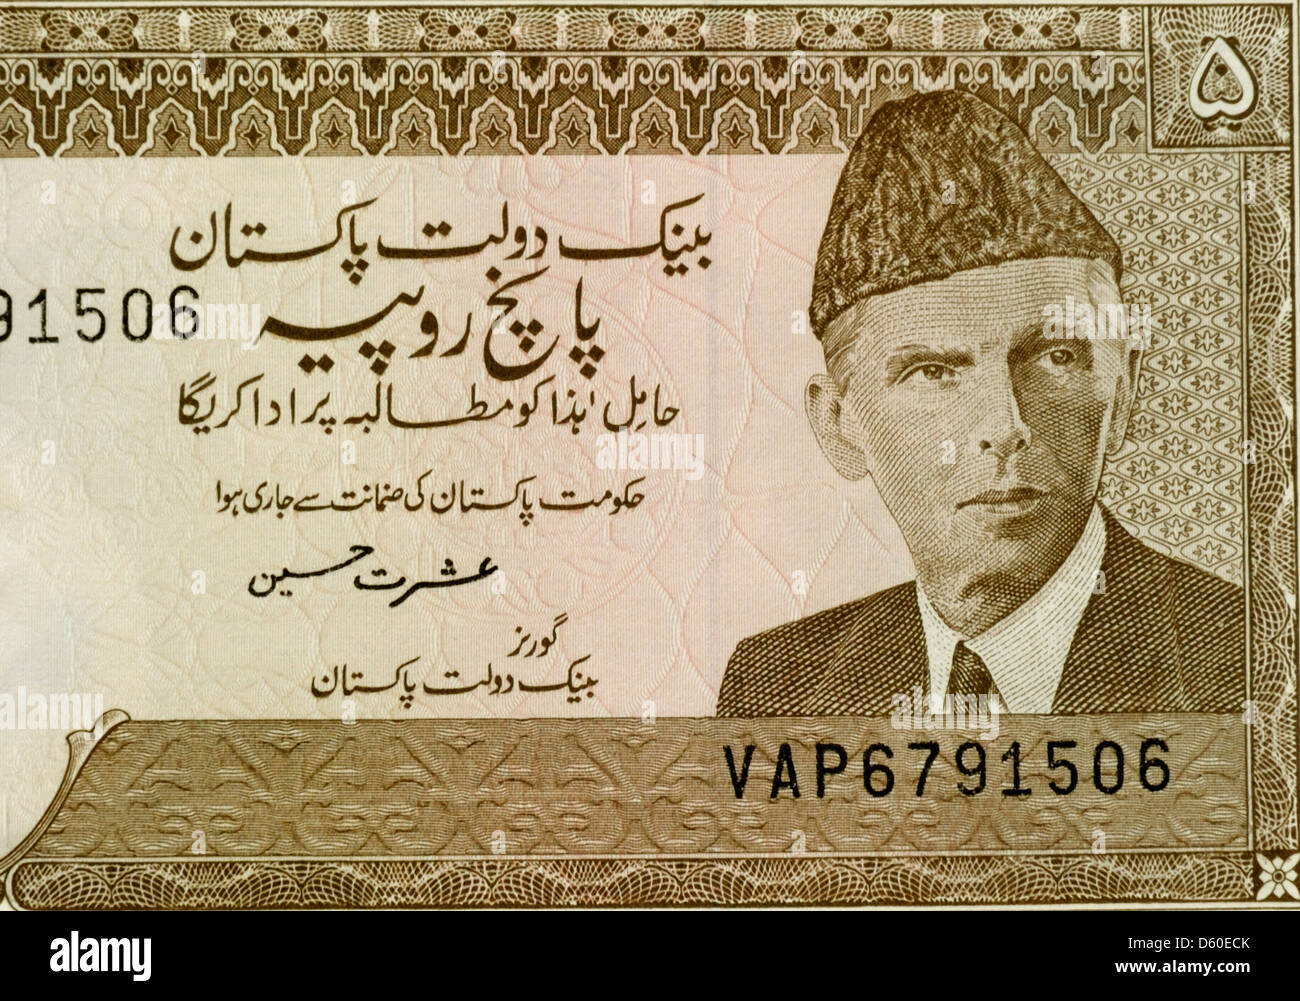 Pakistan 5 Five Rupees Bank Note - Stock Image